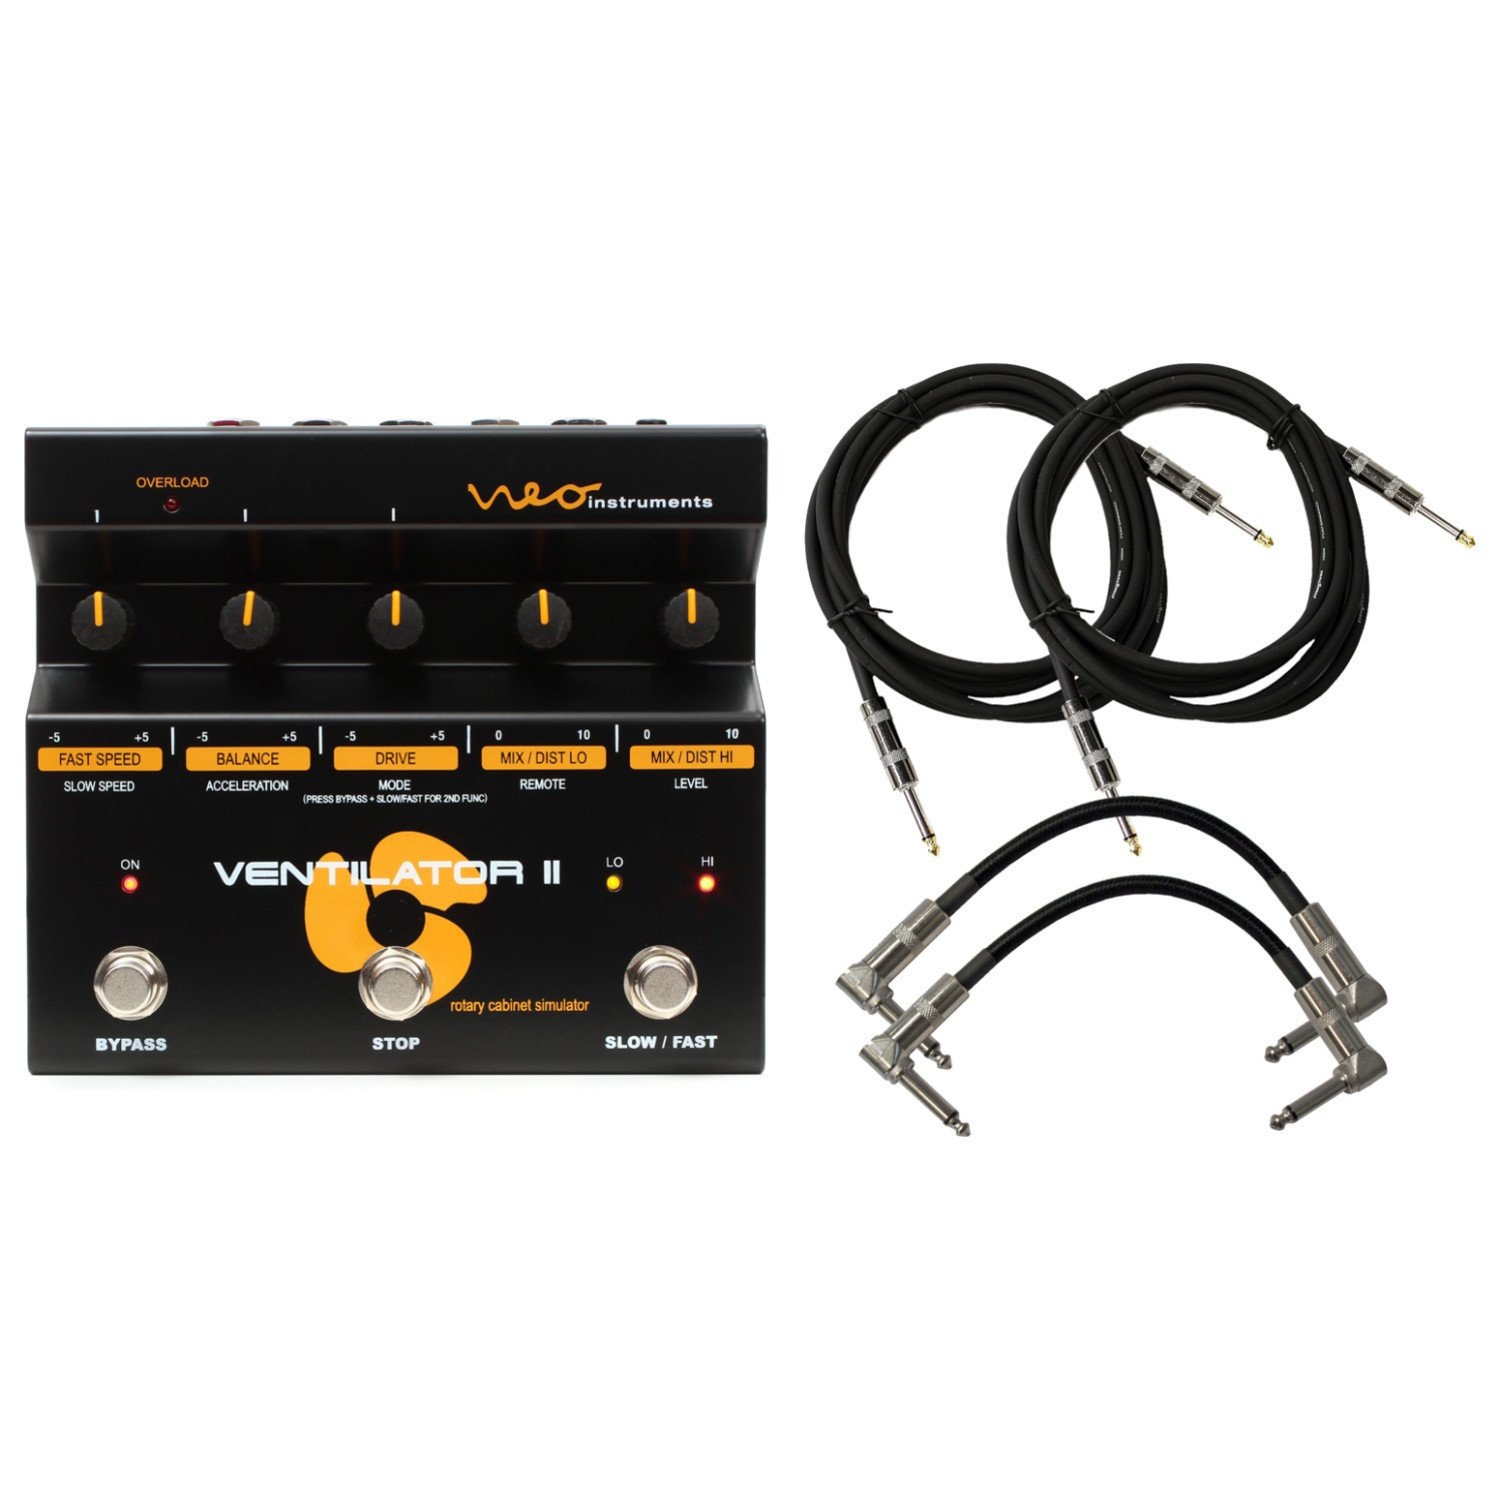 neo instruments ventilator ii rotary speaker simulator pedal for guitar keyboard with 4 cables. Black Bedroom Furniture Sets. Home Design Ideas